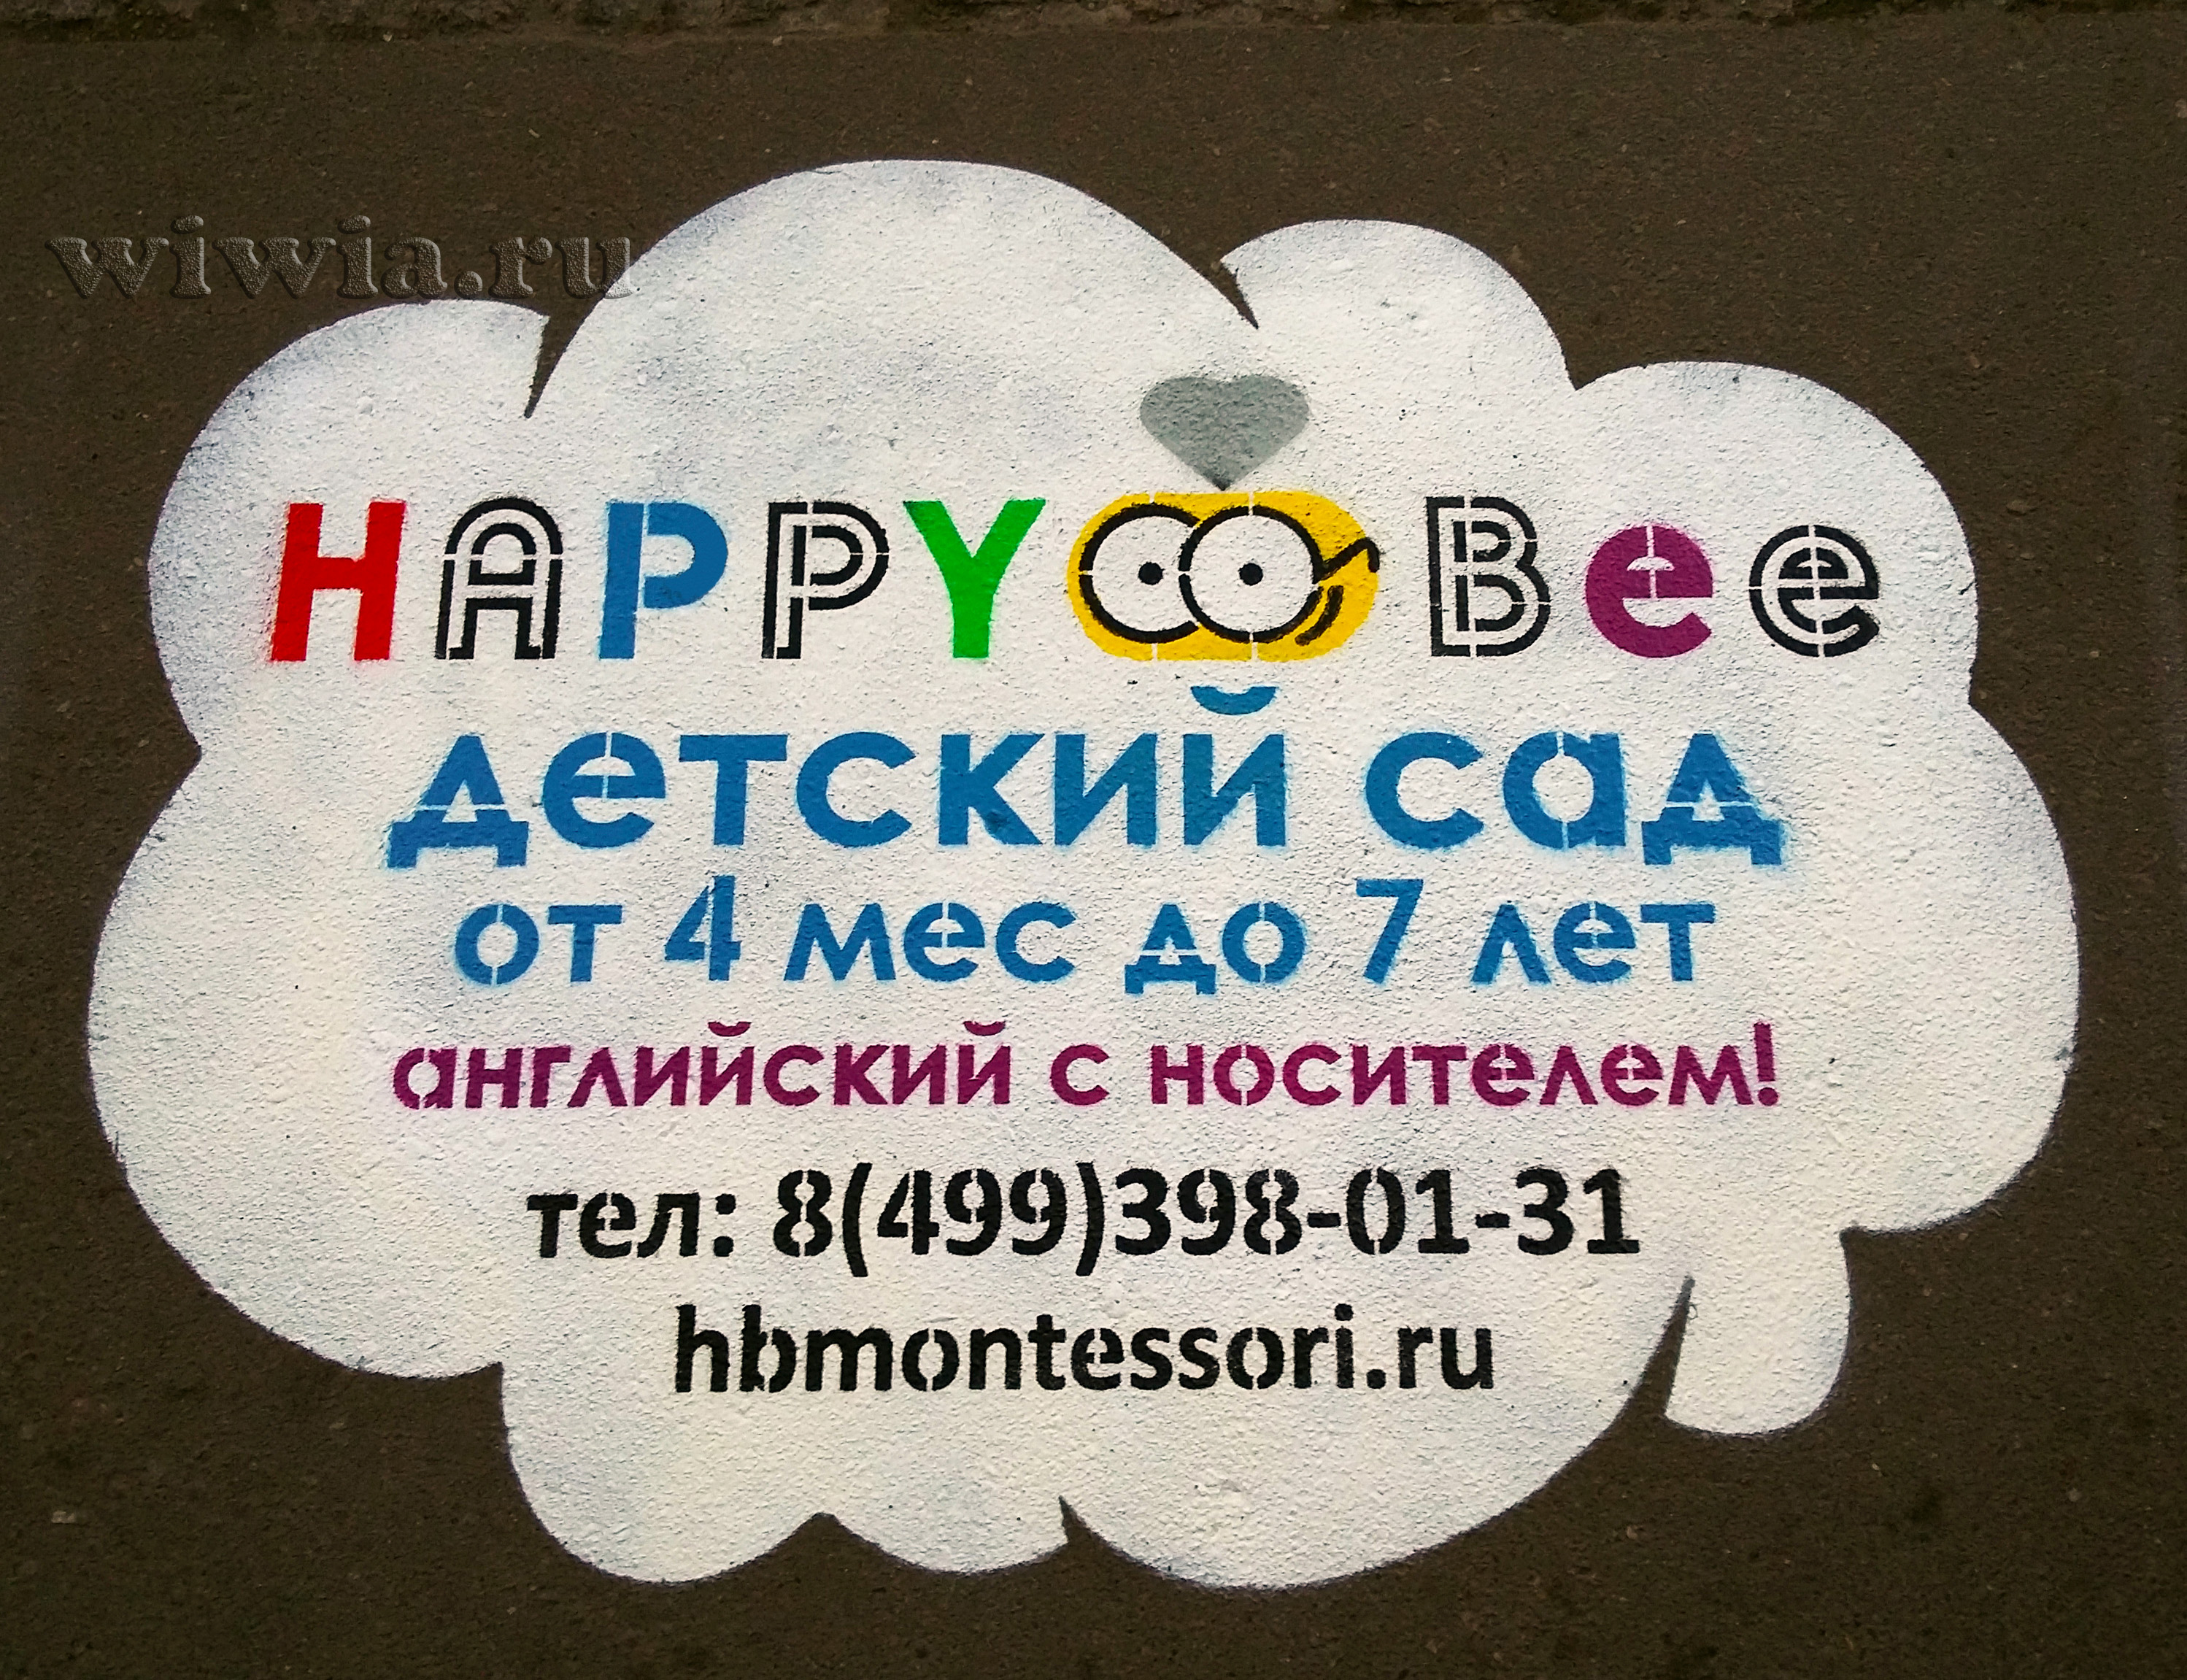 Реклама на асфальте. Happy Bee.